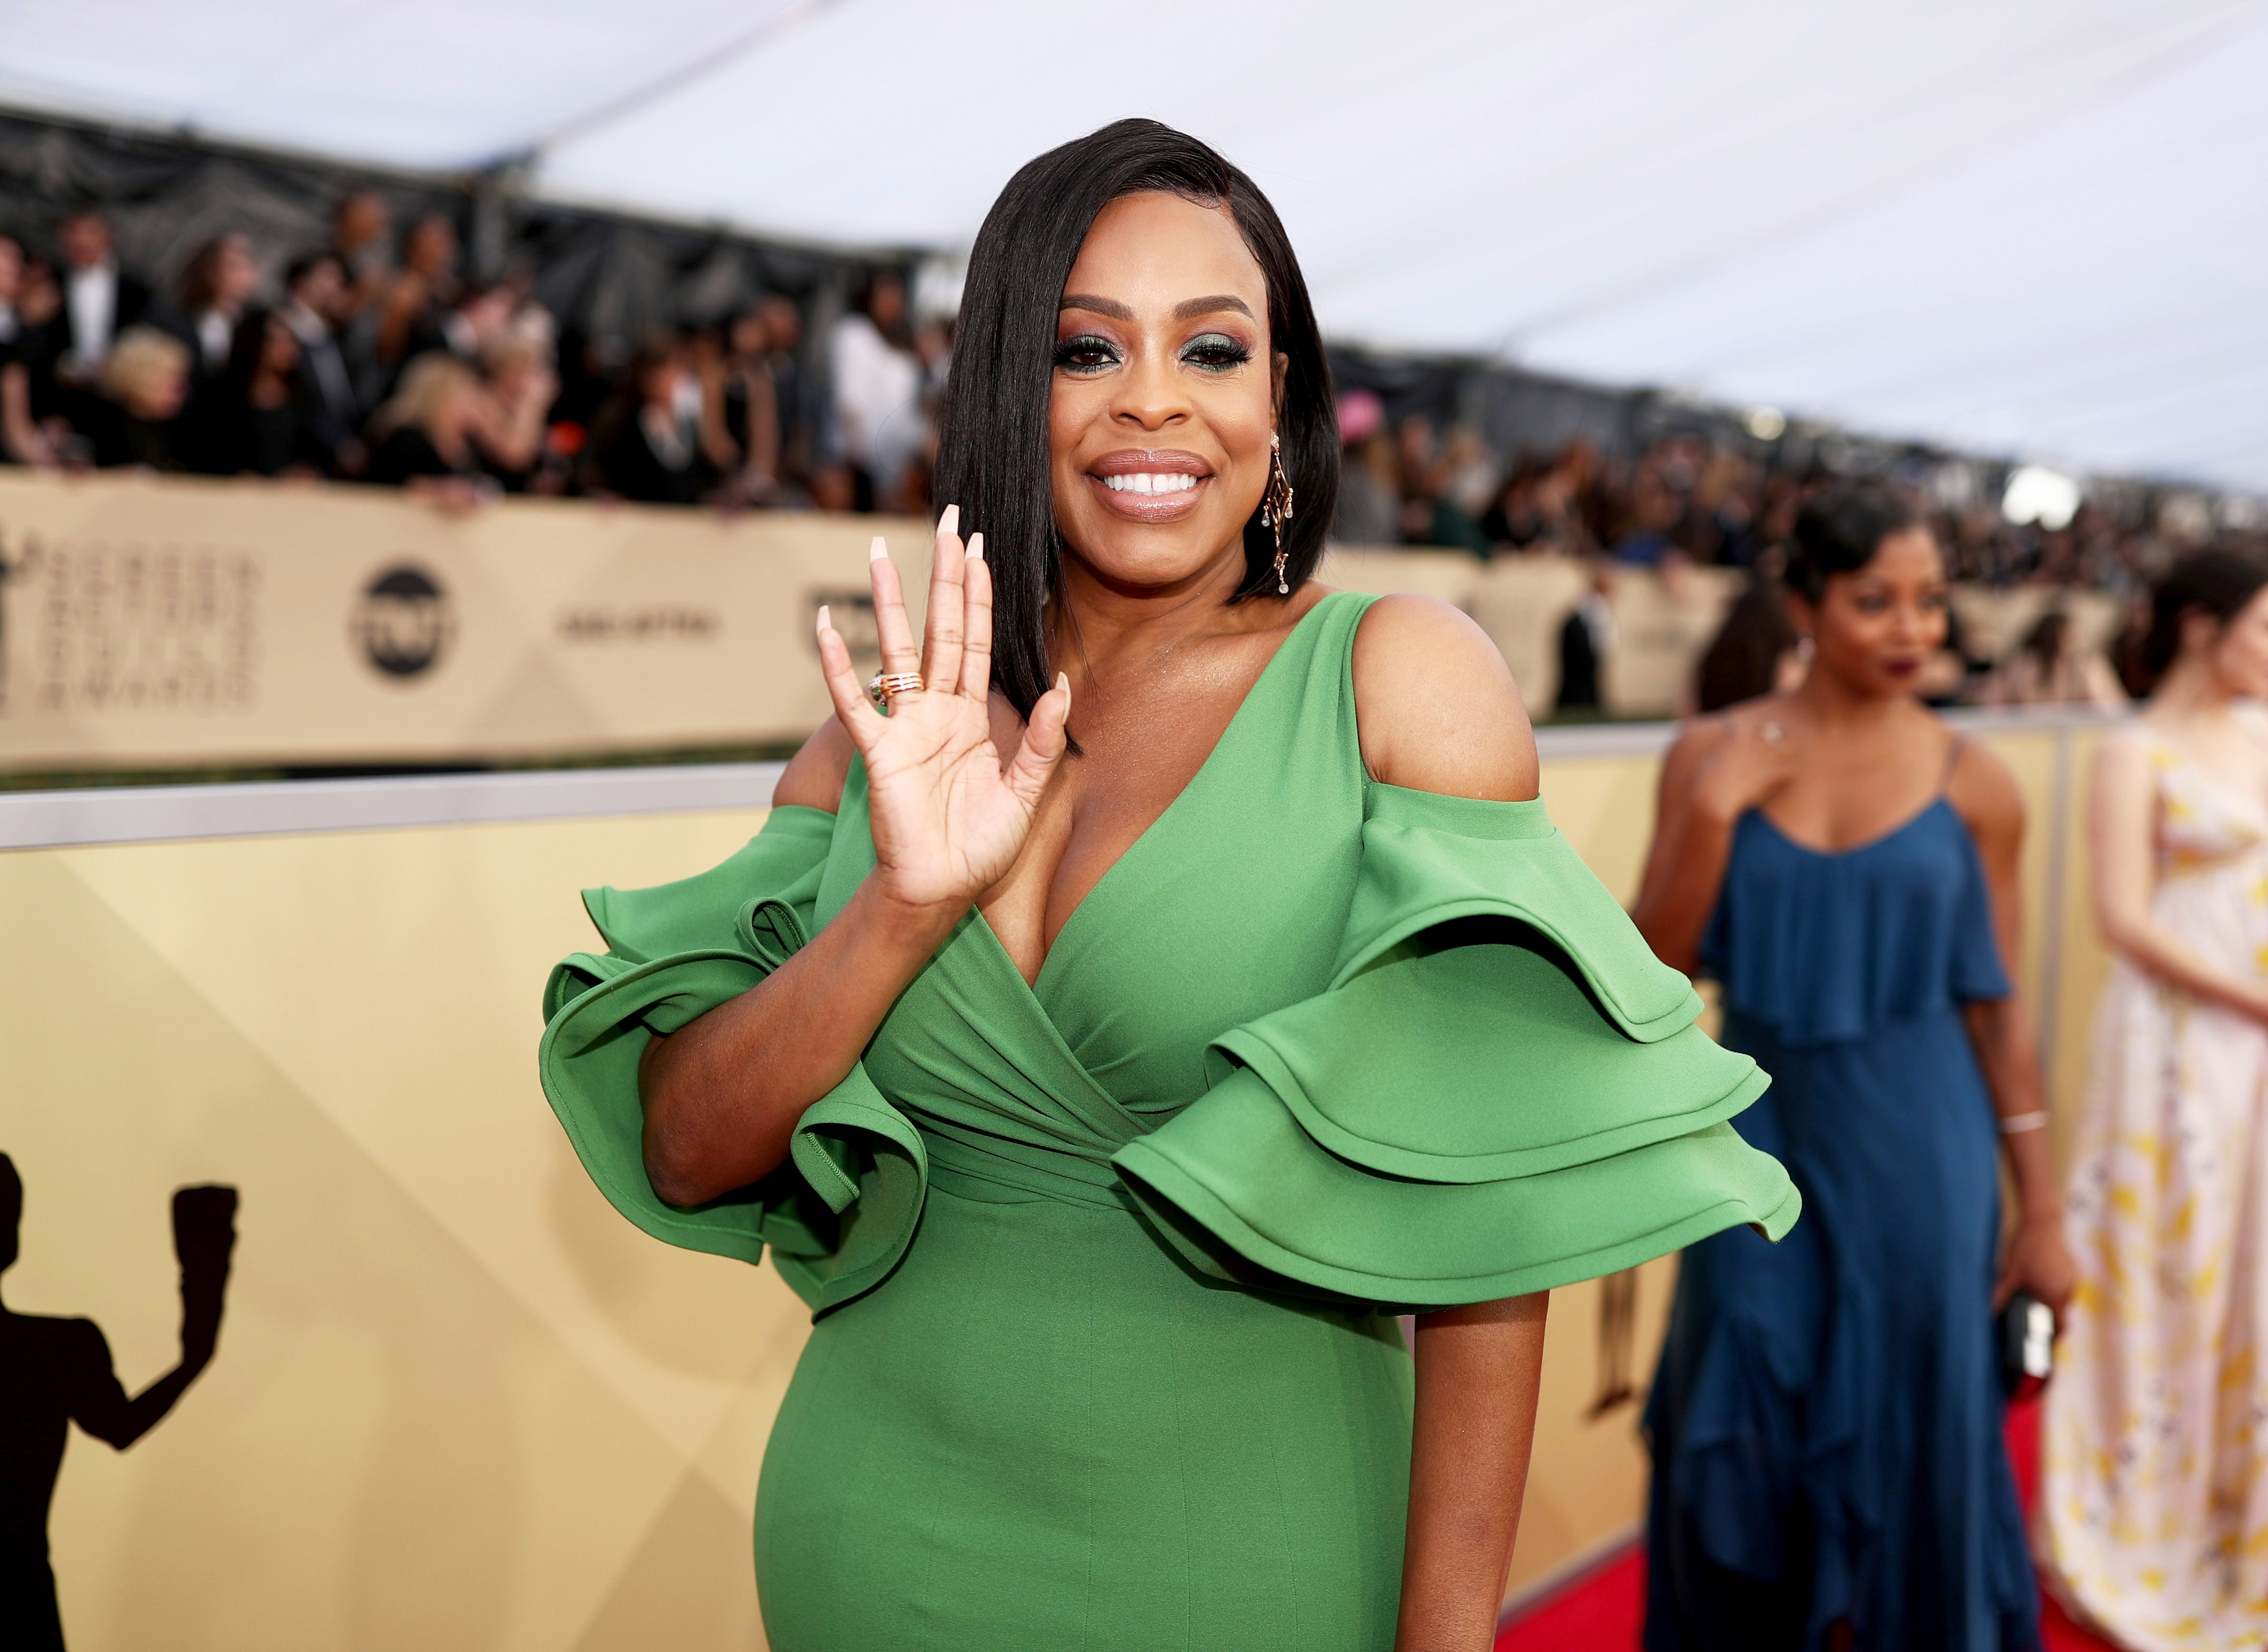 Niecy Nash at the 24th Annual Screen Actors Guild Awards at The Shrine Auditorium on January 21, 2018 in Los Angeles, California | Photo: Getty Images